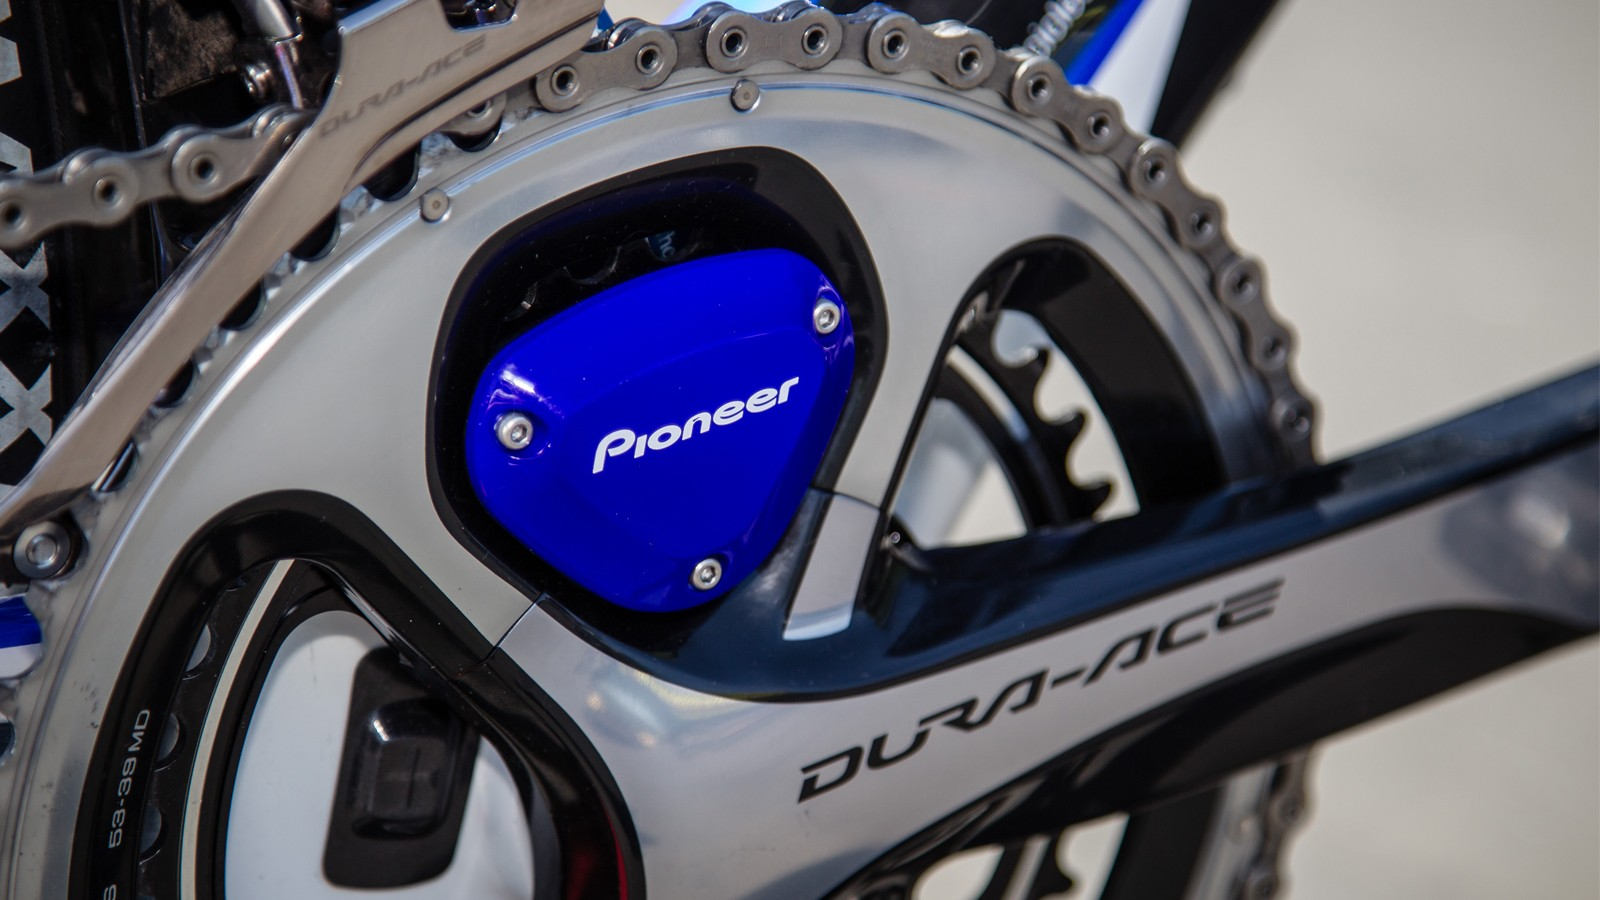 Pioneer's power meter is just one example that measures both left and right power balance. The firm is a sponsor of Ben Day's